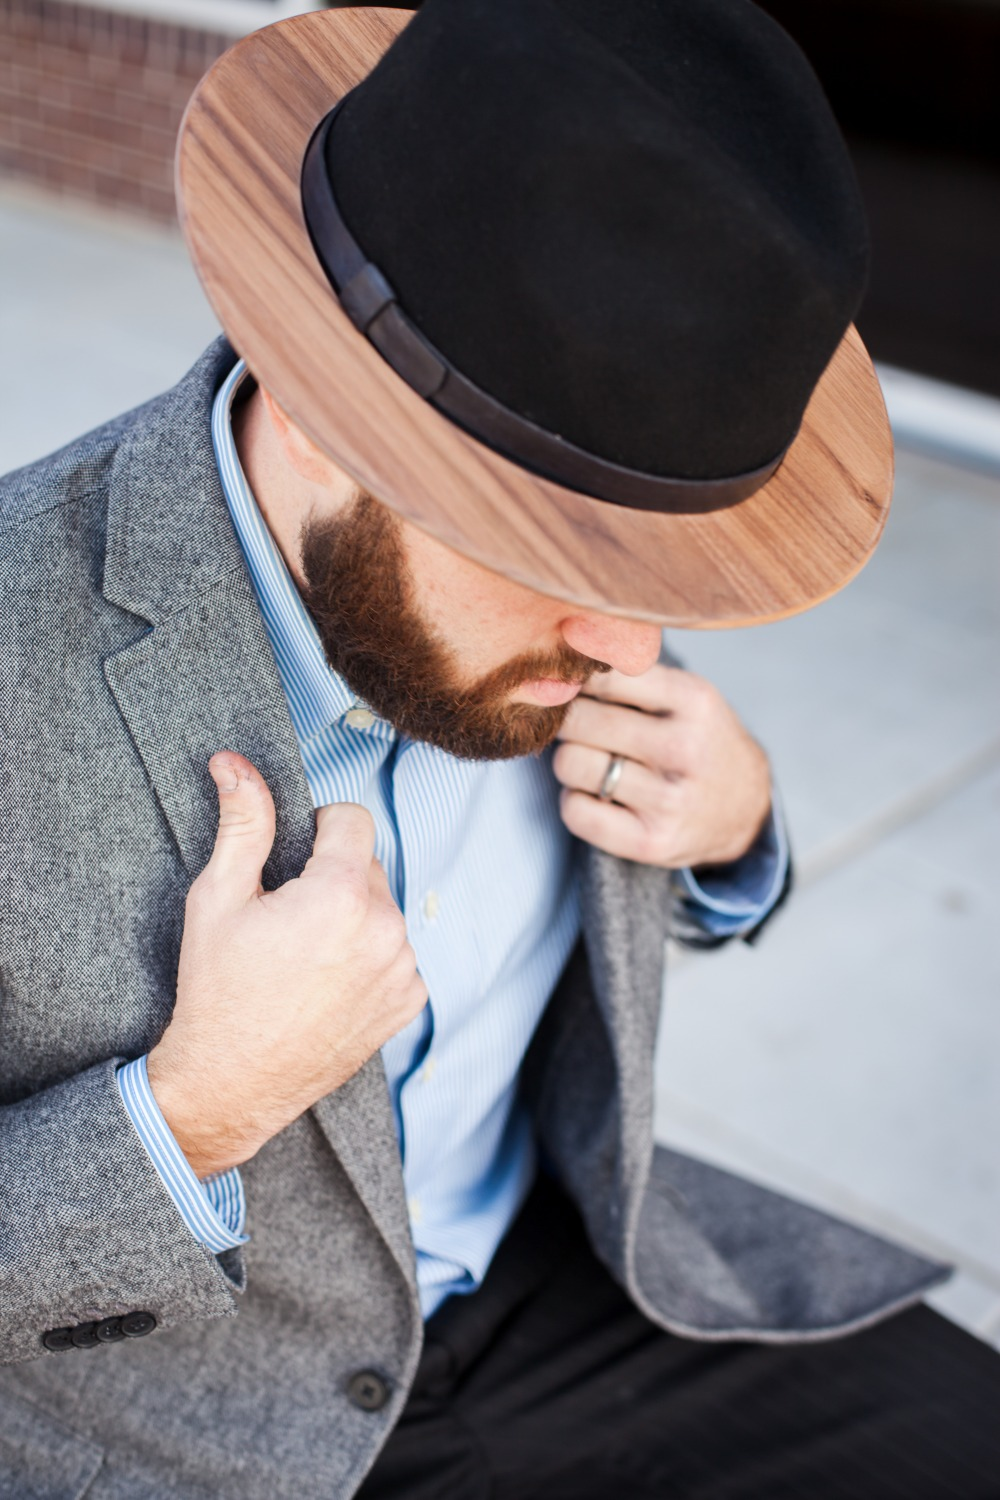 Wood Brimmed Fedoras Two Guys Bow Ties